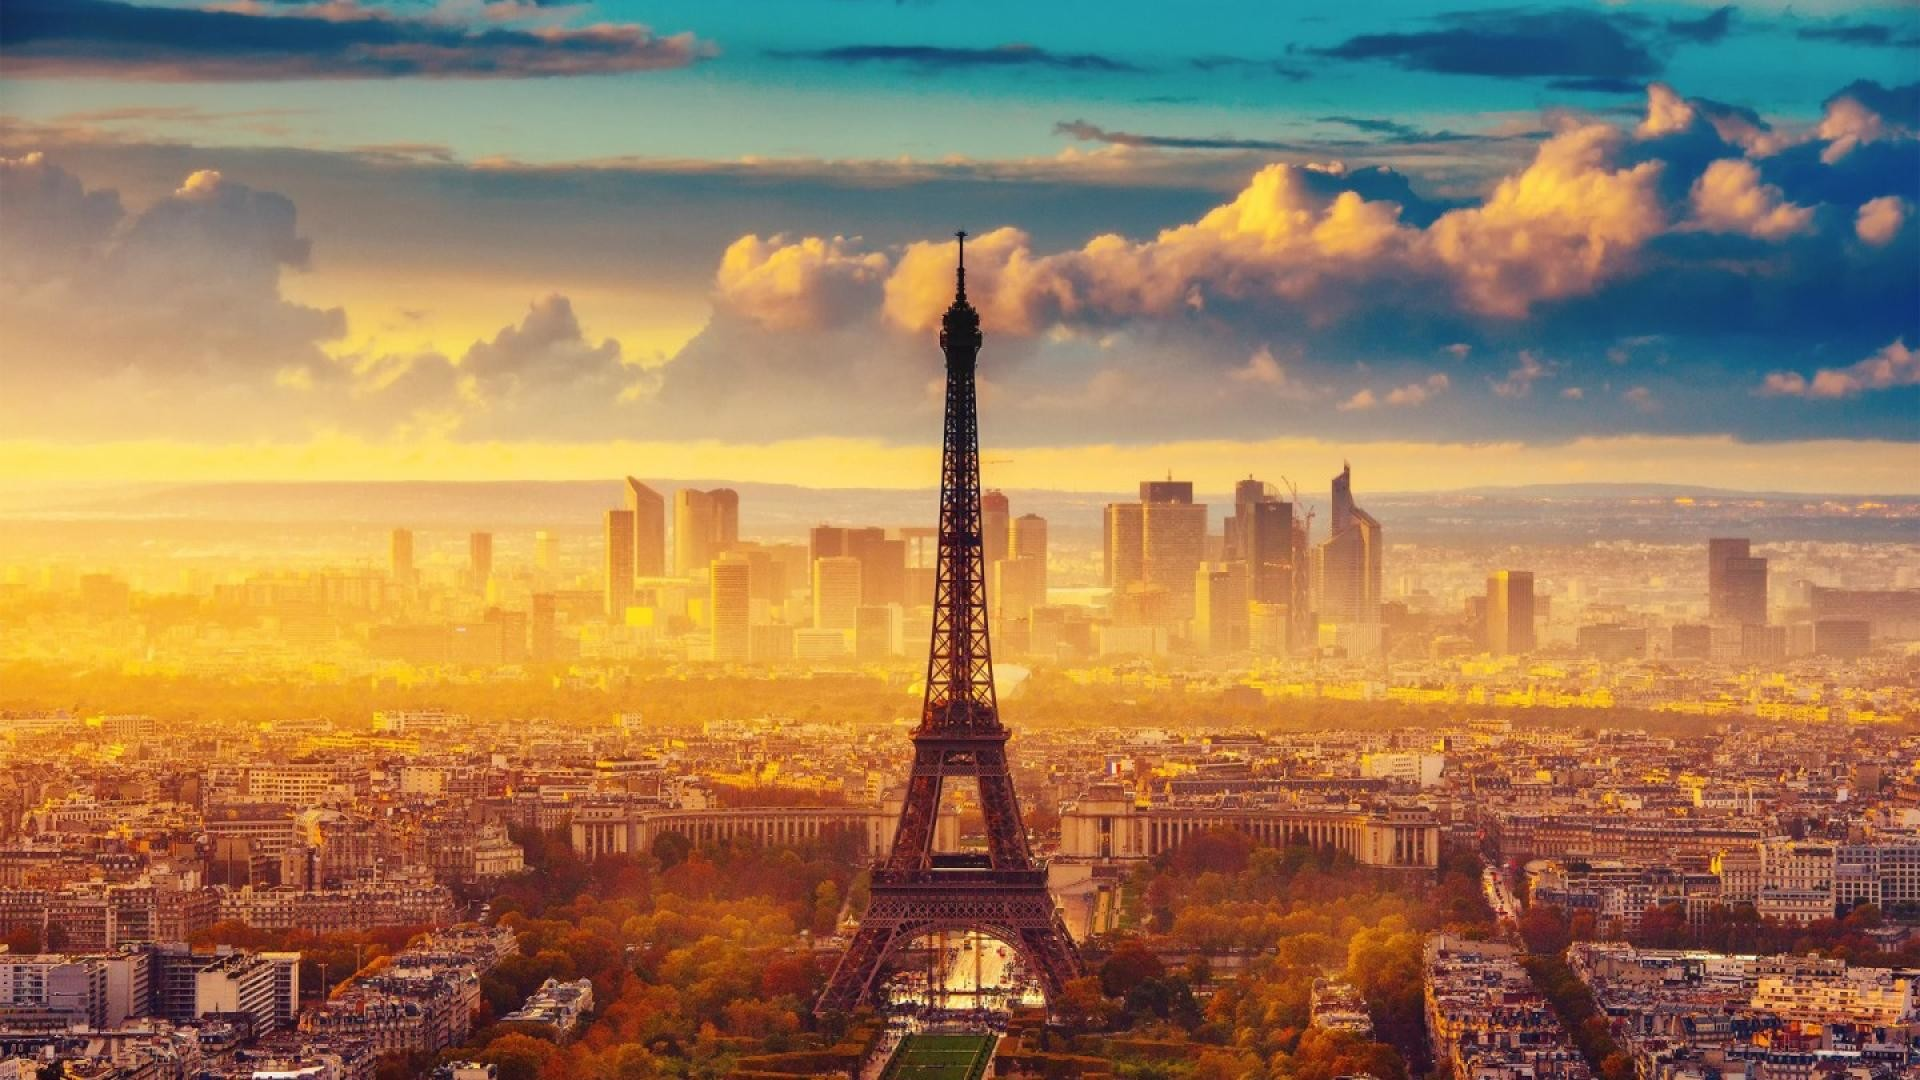 Eiffel Tower Background 63 Images